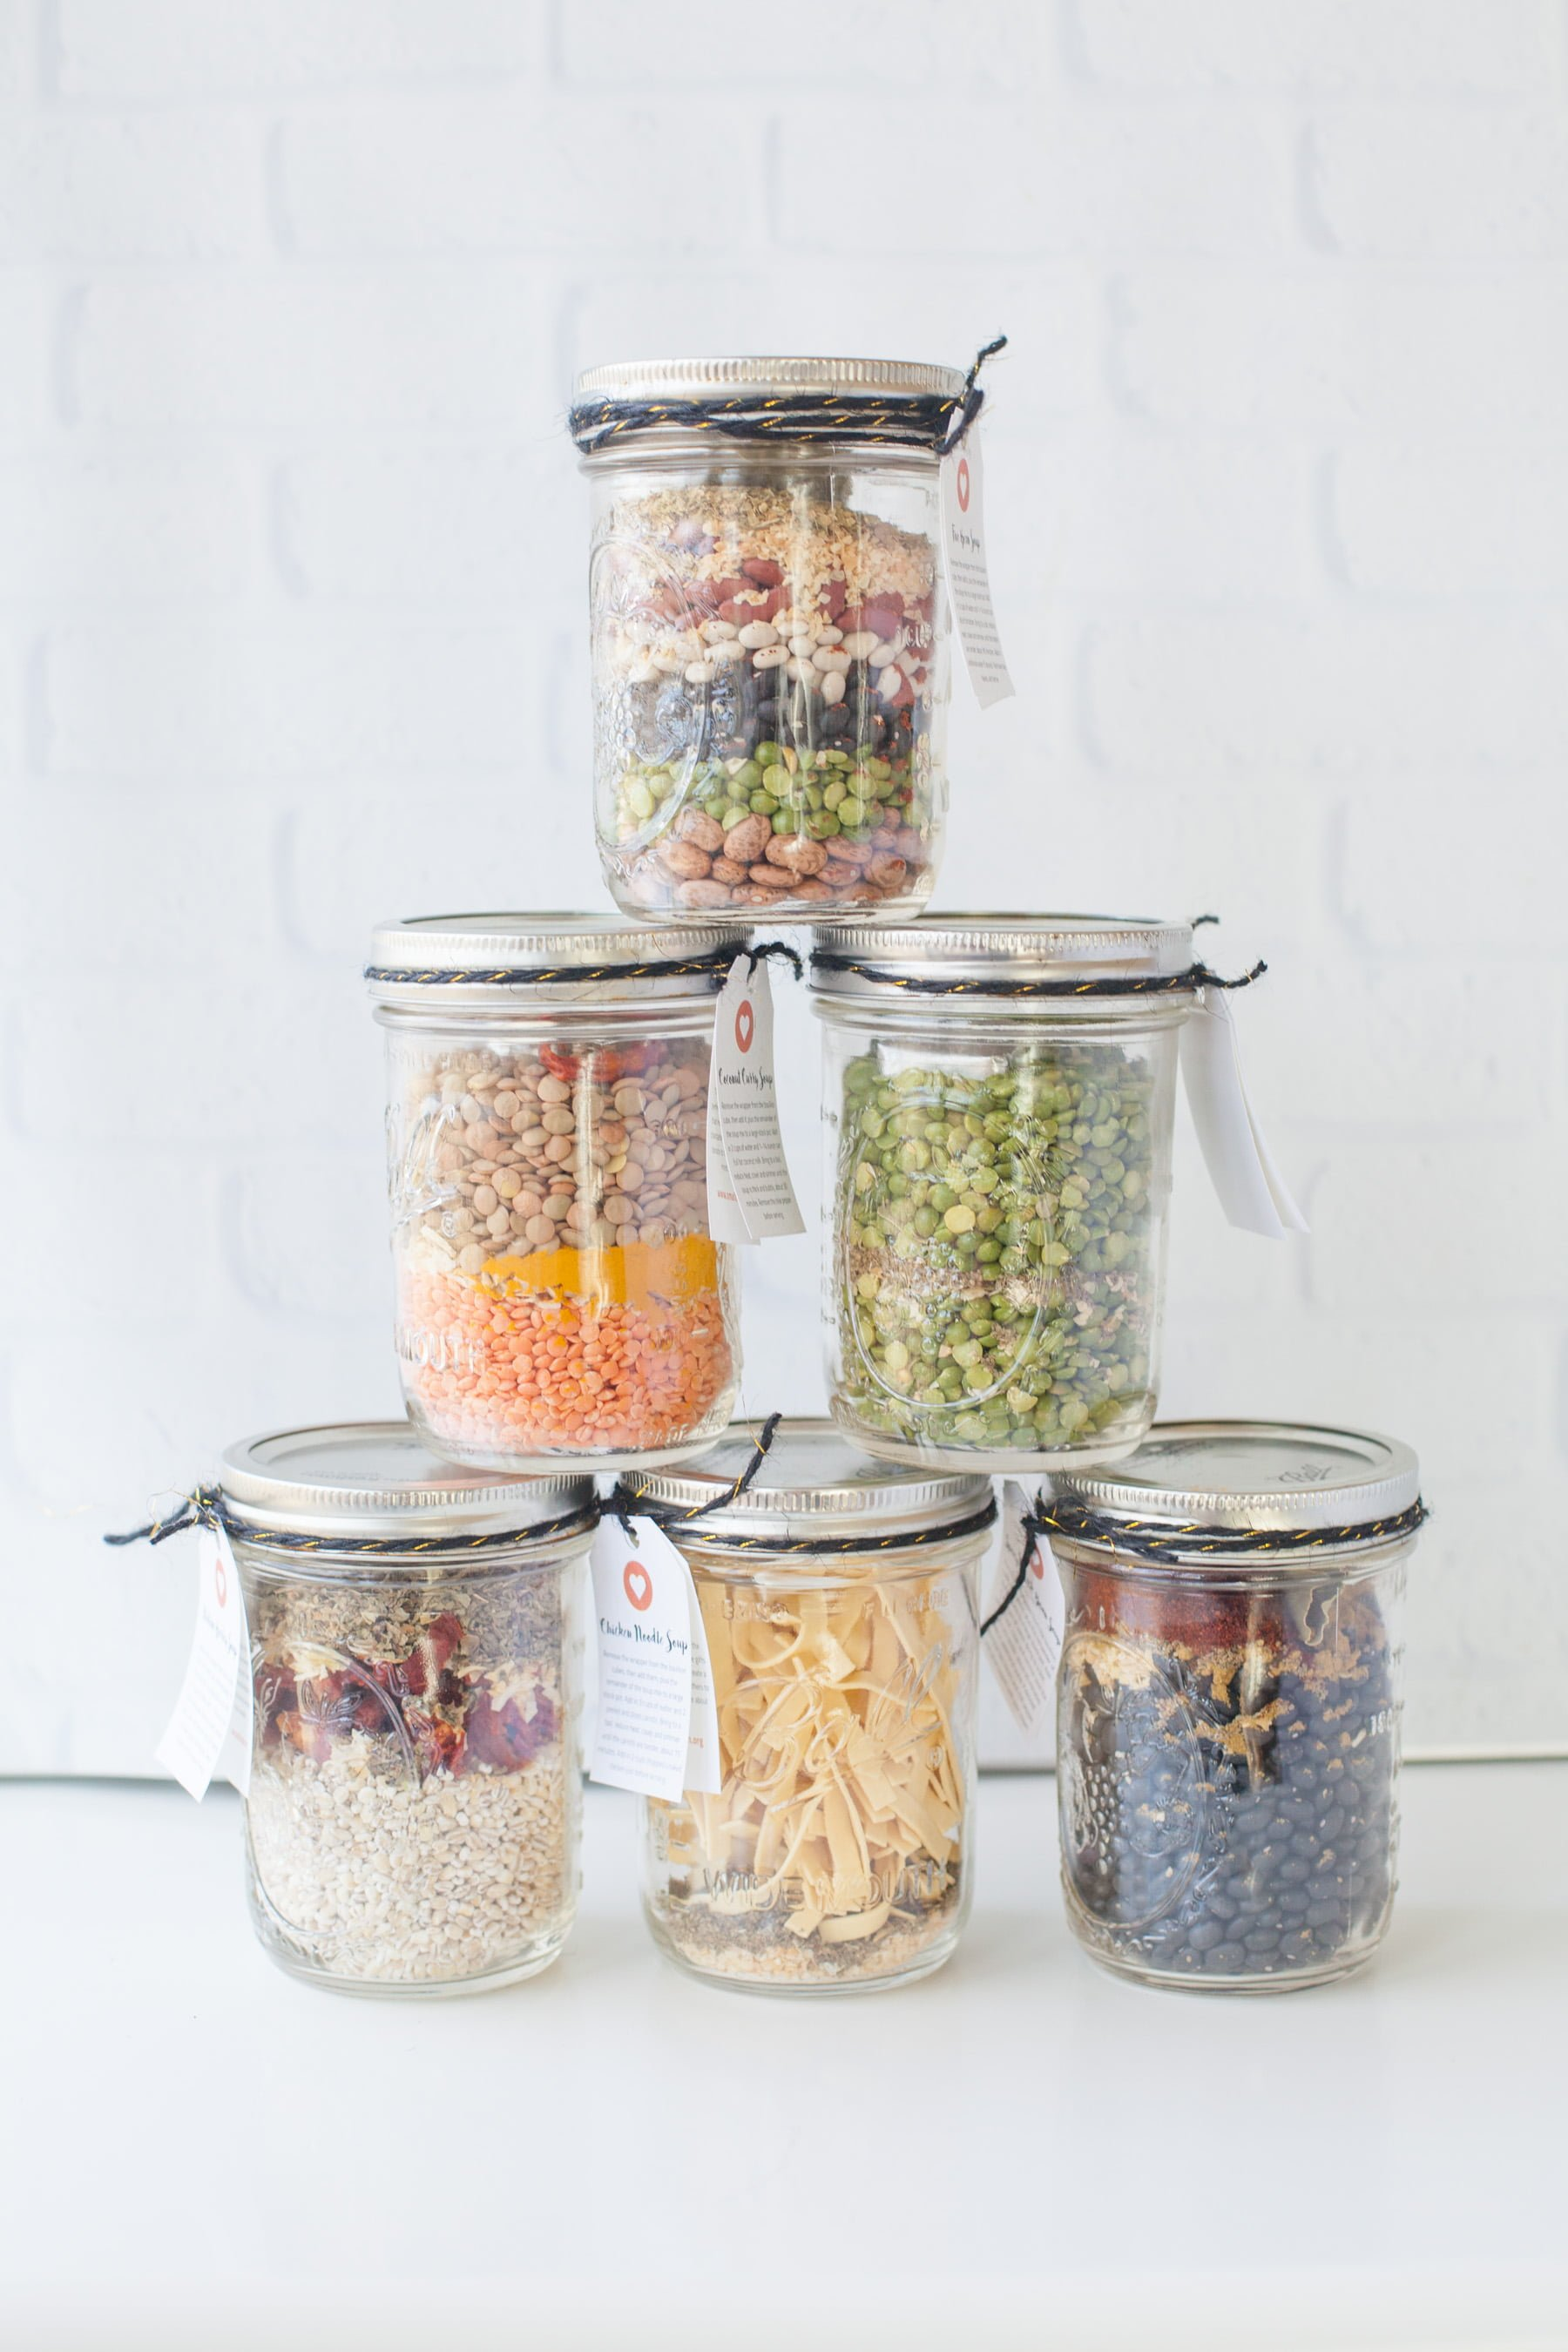 Soup Mixes in a Jar